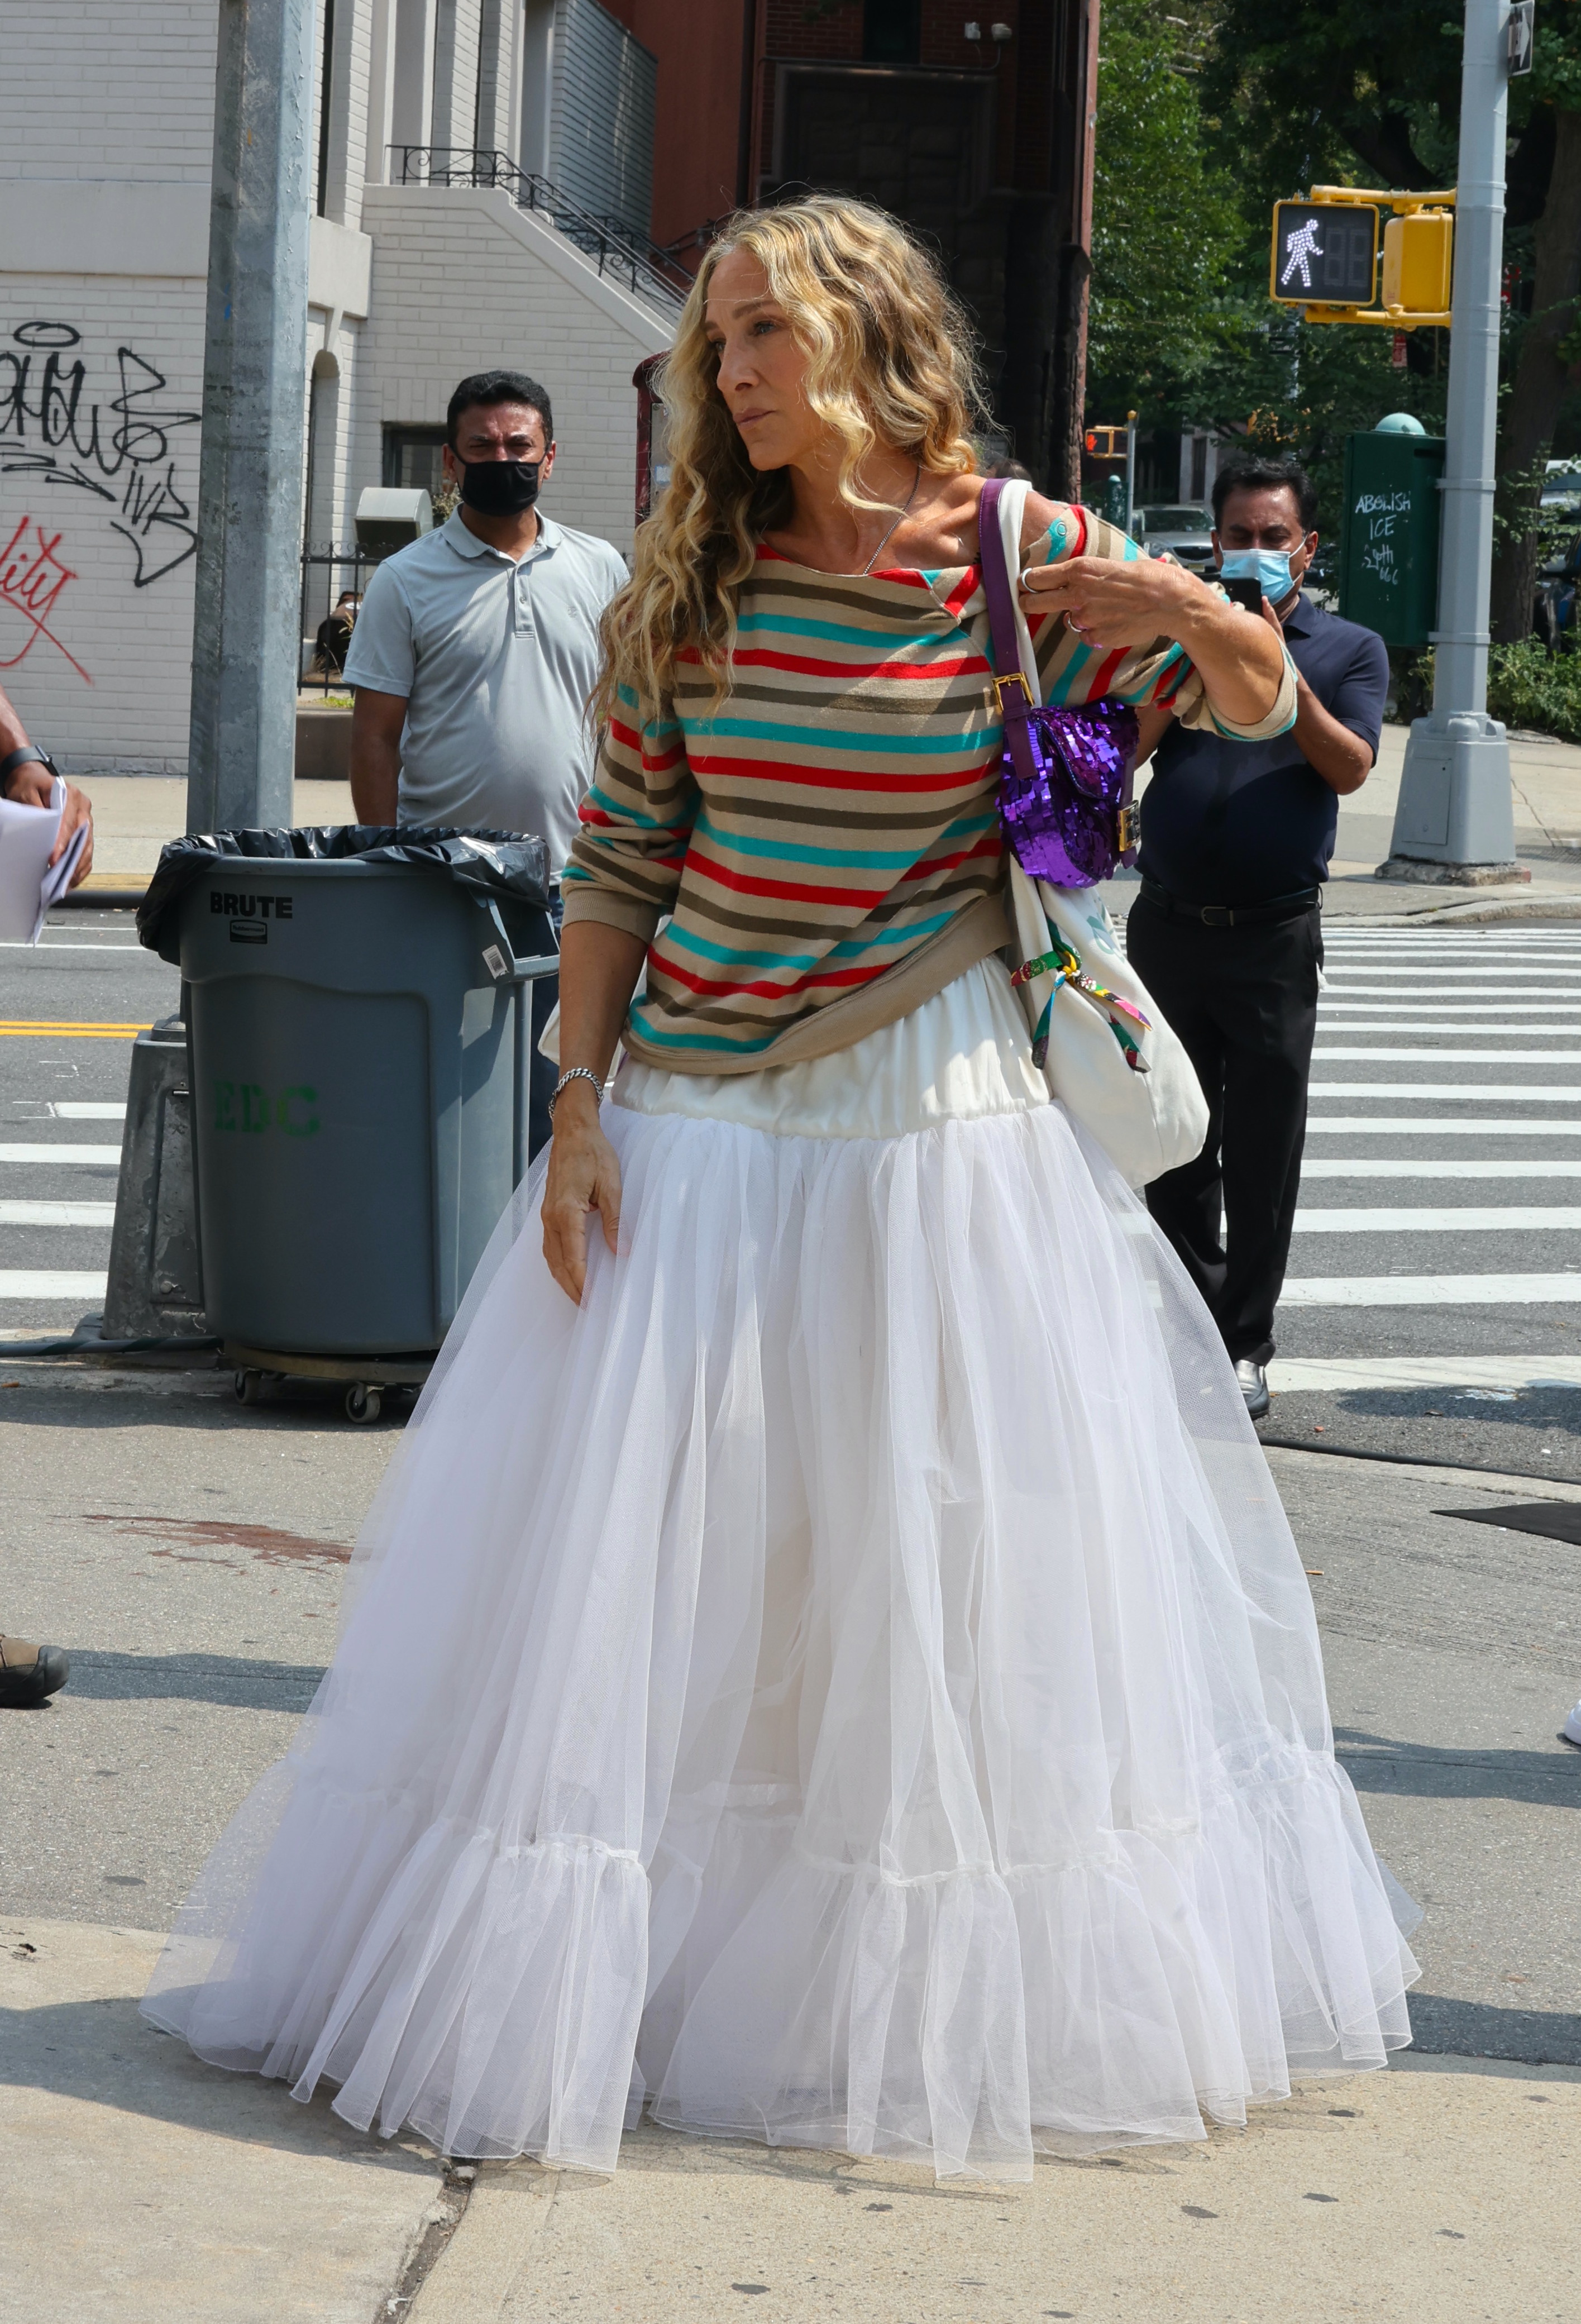 Sarah Jessica Parker pictured wearing a white tutu as she films a scene on the 'And Just Like That' set in Brooklyn.Pictured: Sarah Jessica Parker Ref: SPL5249224 270821 NON-EXCLUSIVE Picture by: Jose Perez / SplashNews.com Splash News and Pictures USA: +1 310-525-5808 London: +44 (0)20 8126 1009 Berlin: +49 175 3764 166 photodesk@splashnews.com World Rights